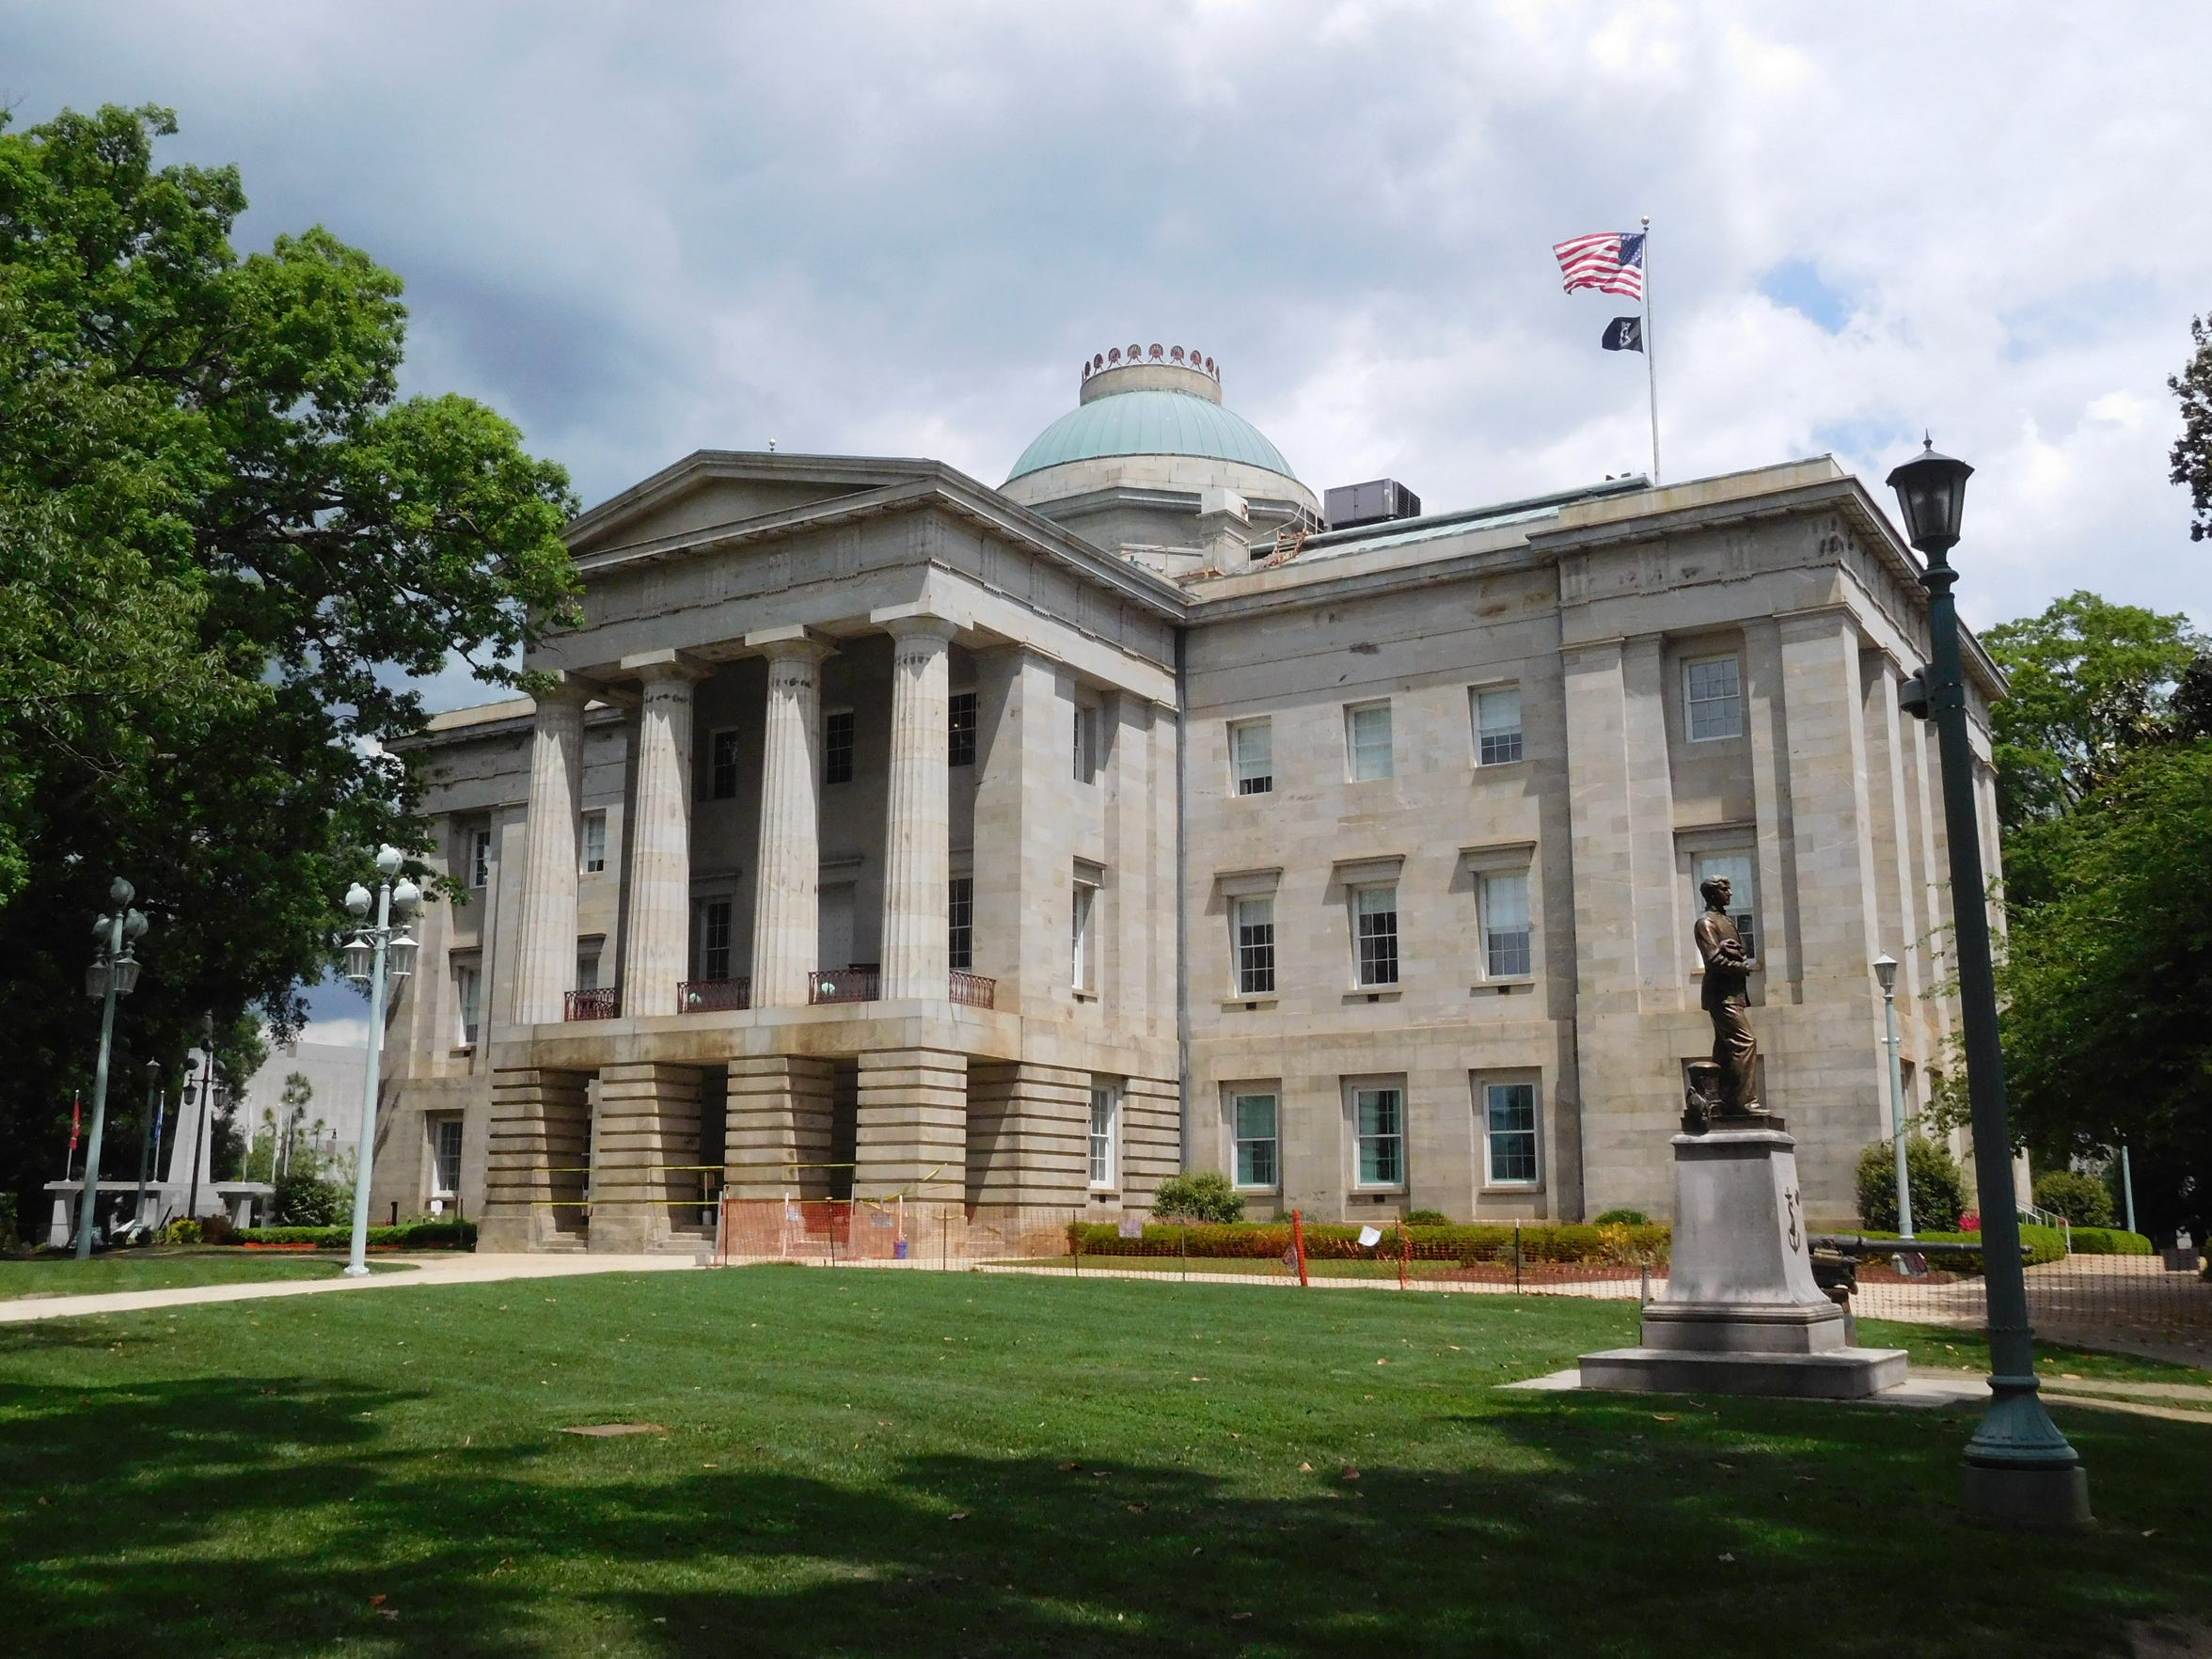 The N.C. Capitol Building in Raleigh. Douglas Shackelford, dean of UNC Chapel Hill's Kenan-Flagler School of Business, says experts are skeptical about the idea that lower taxes can have a major impact on a state's economy in short order.